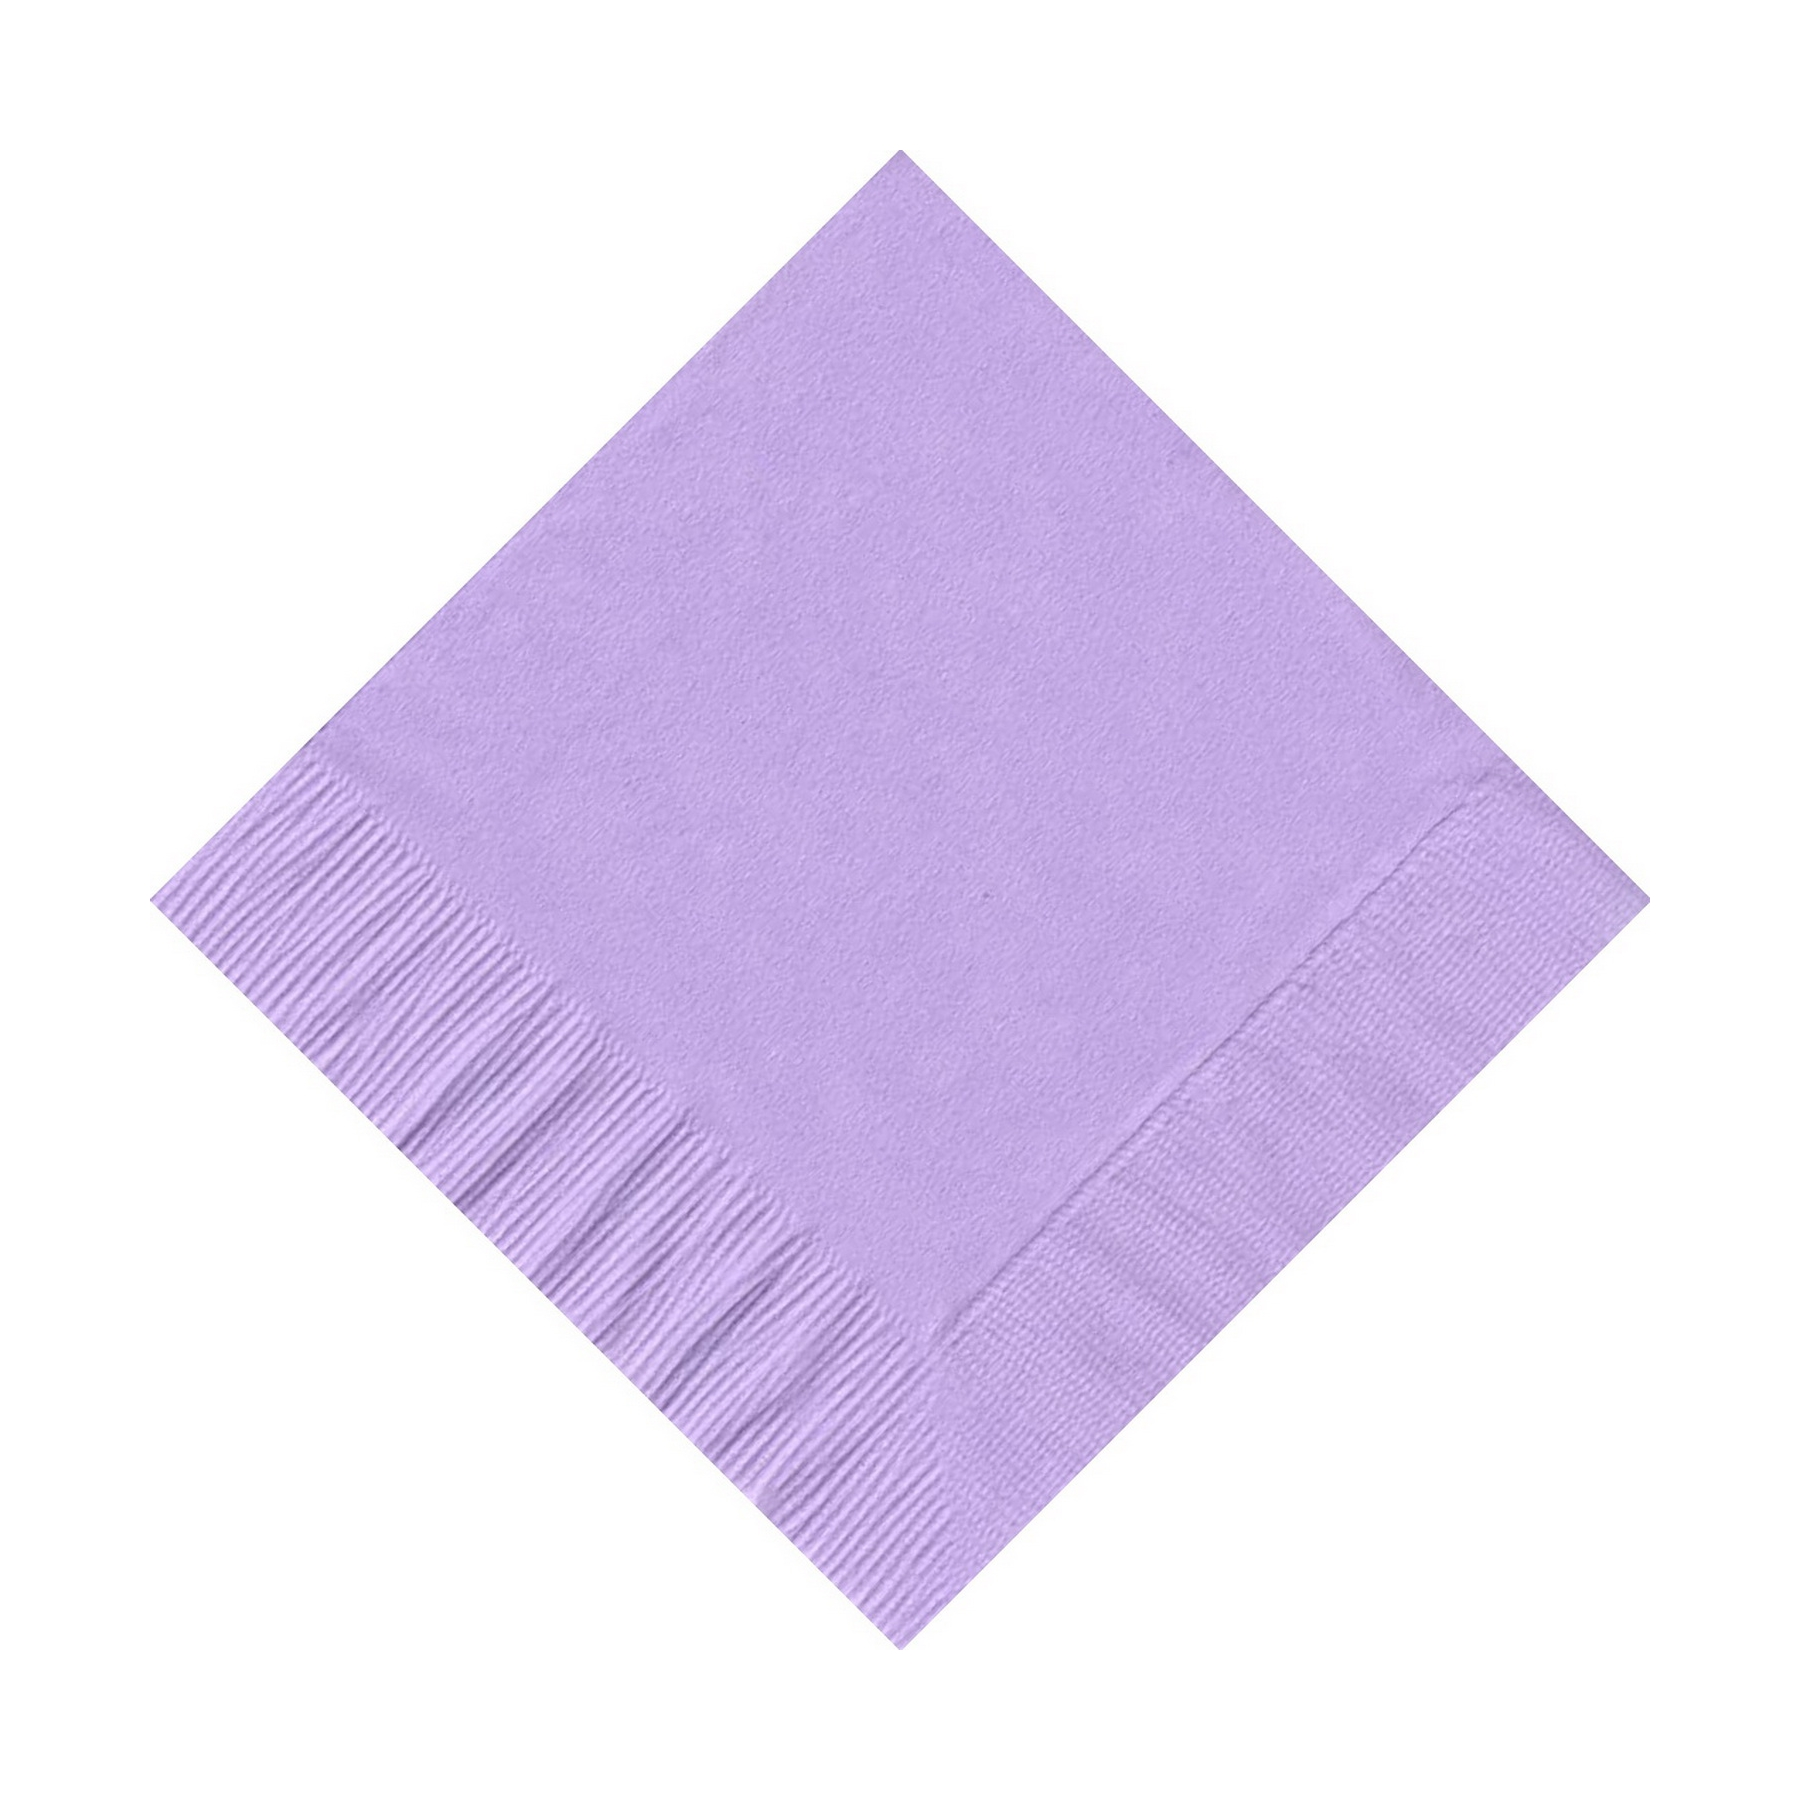 200 (4 Pks of 50) 2 Ply Plain Solid Colors Beverage Cocktail Napkins Paper Lavender by CREATIVE CONVERTING